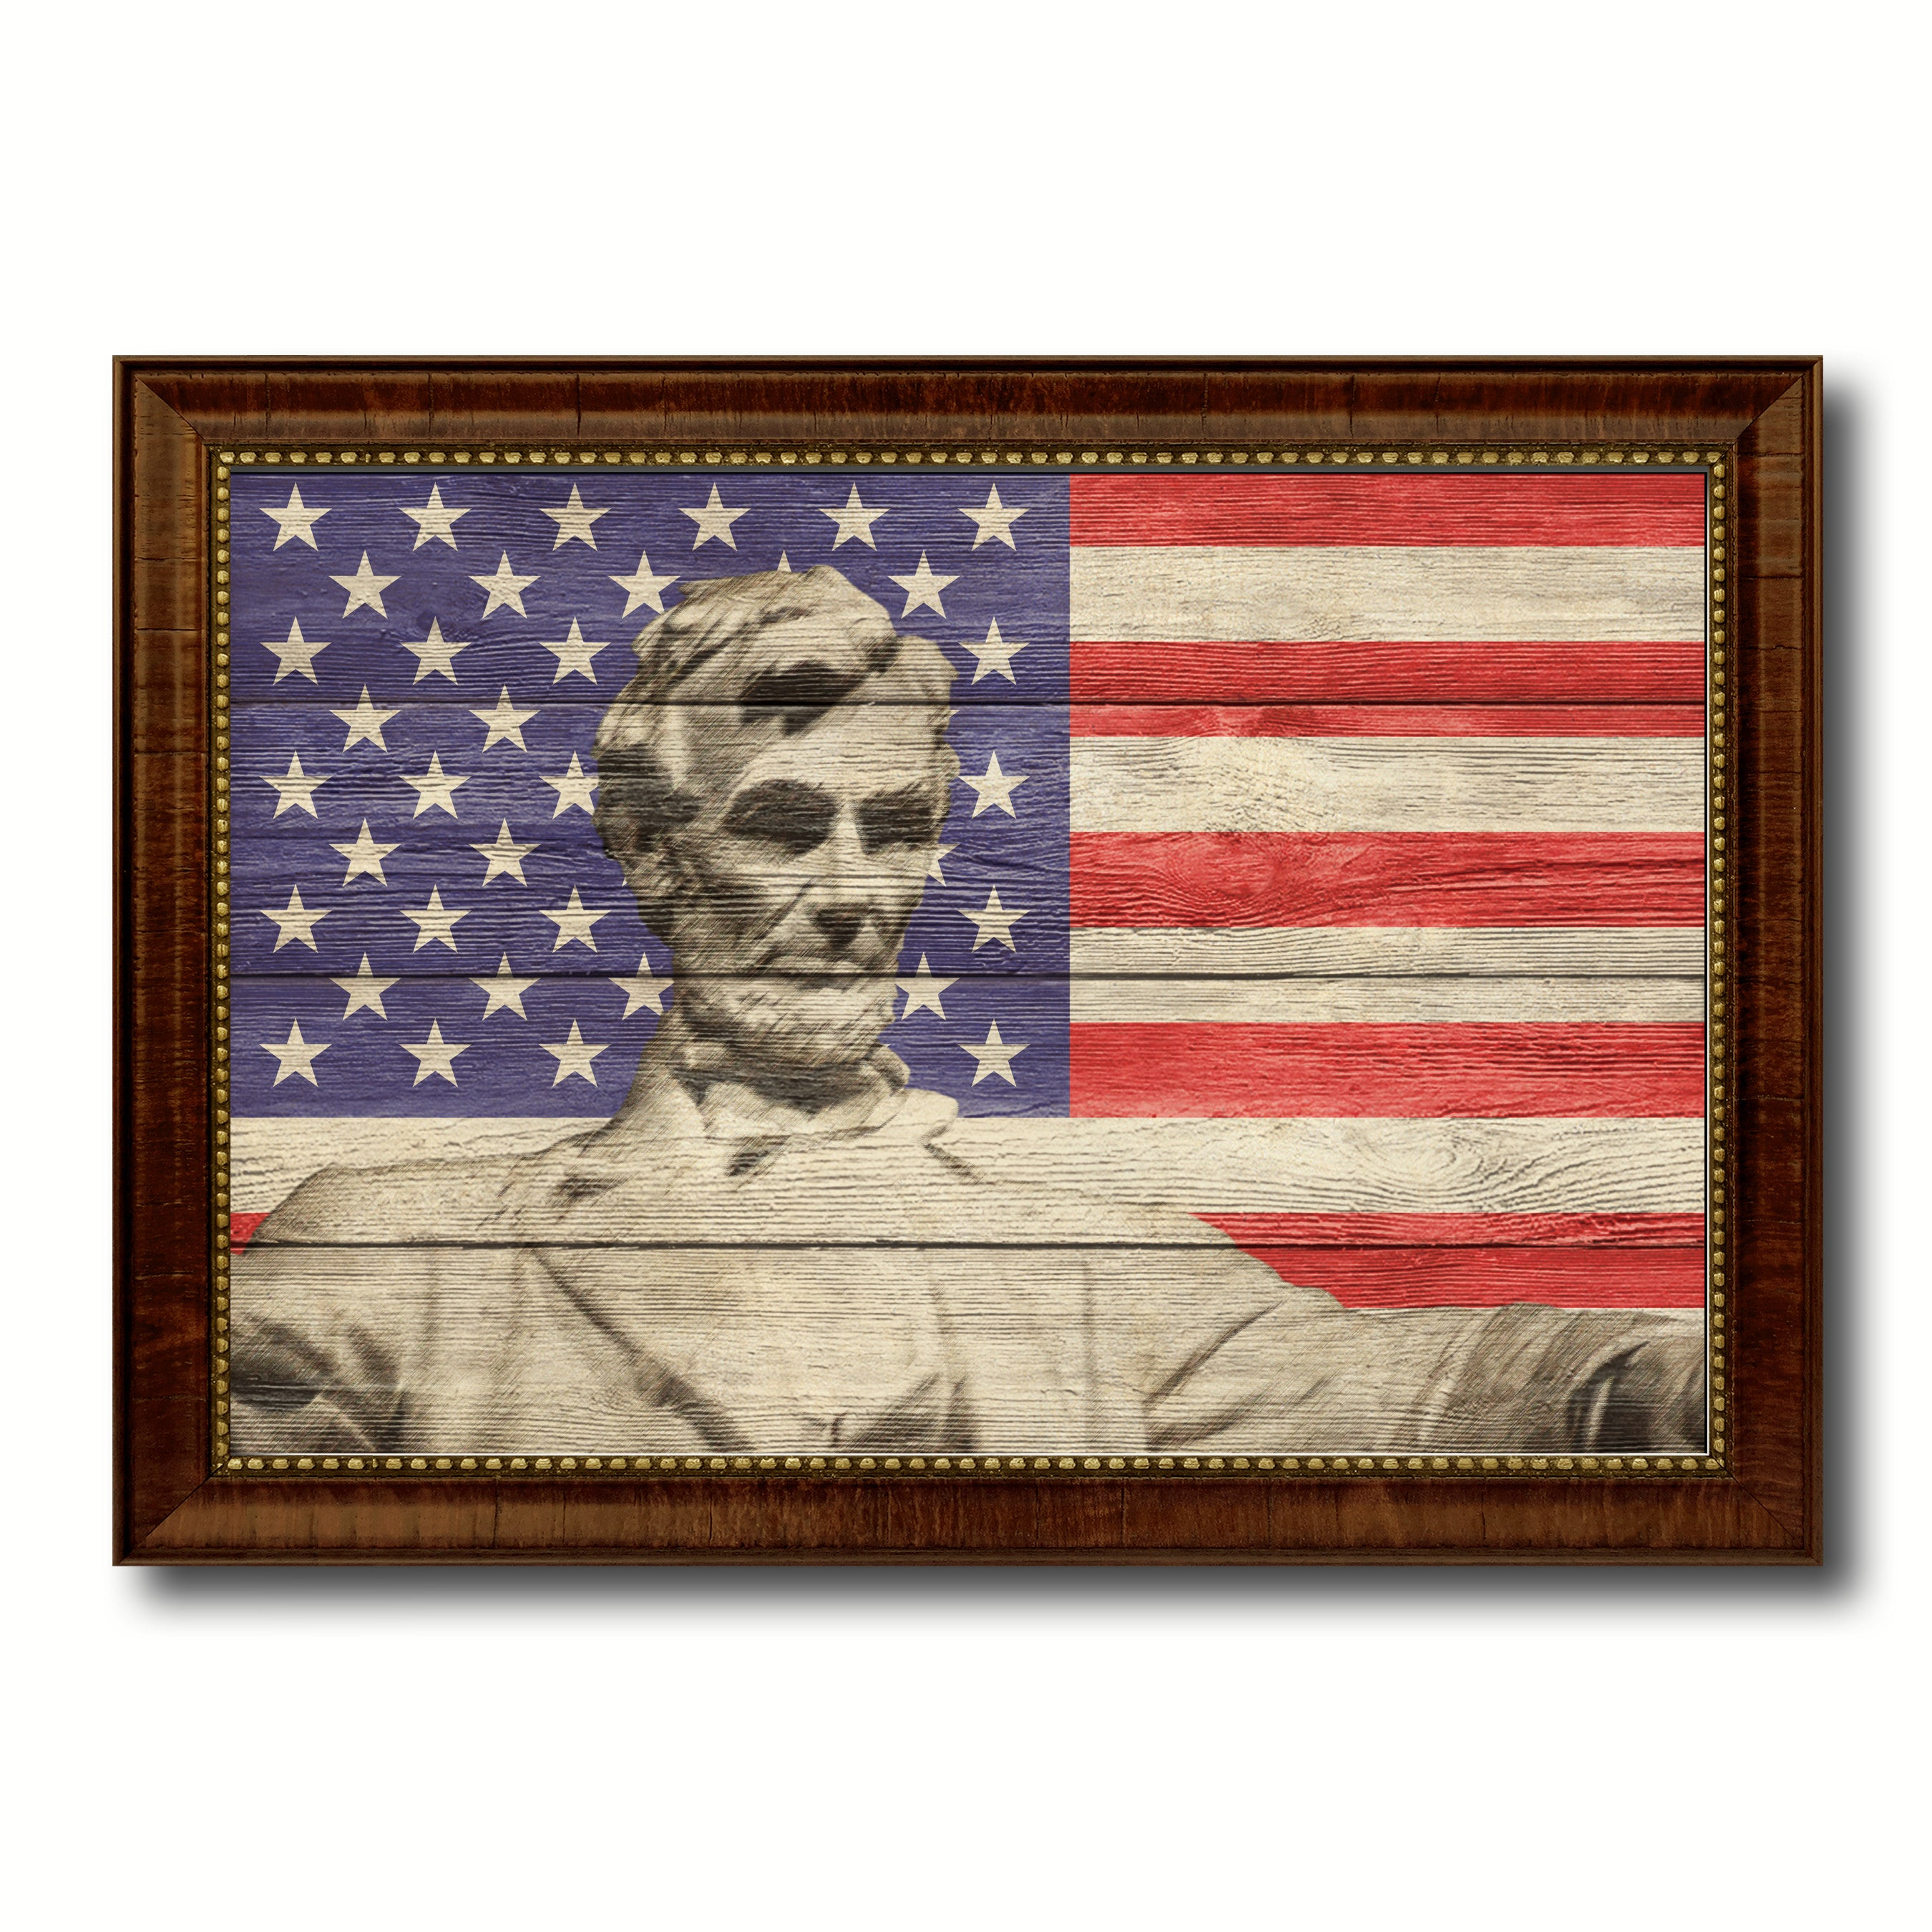 USA Abraham Lincoln Memorial American Flag Texture Canvas Print with Brown Picture Frame Gifts Home Decor Wall Art Collectible Decoration Artwork